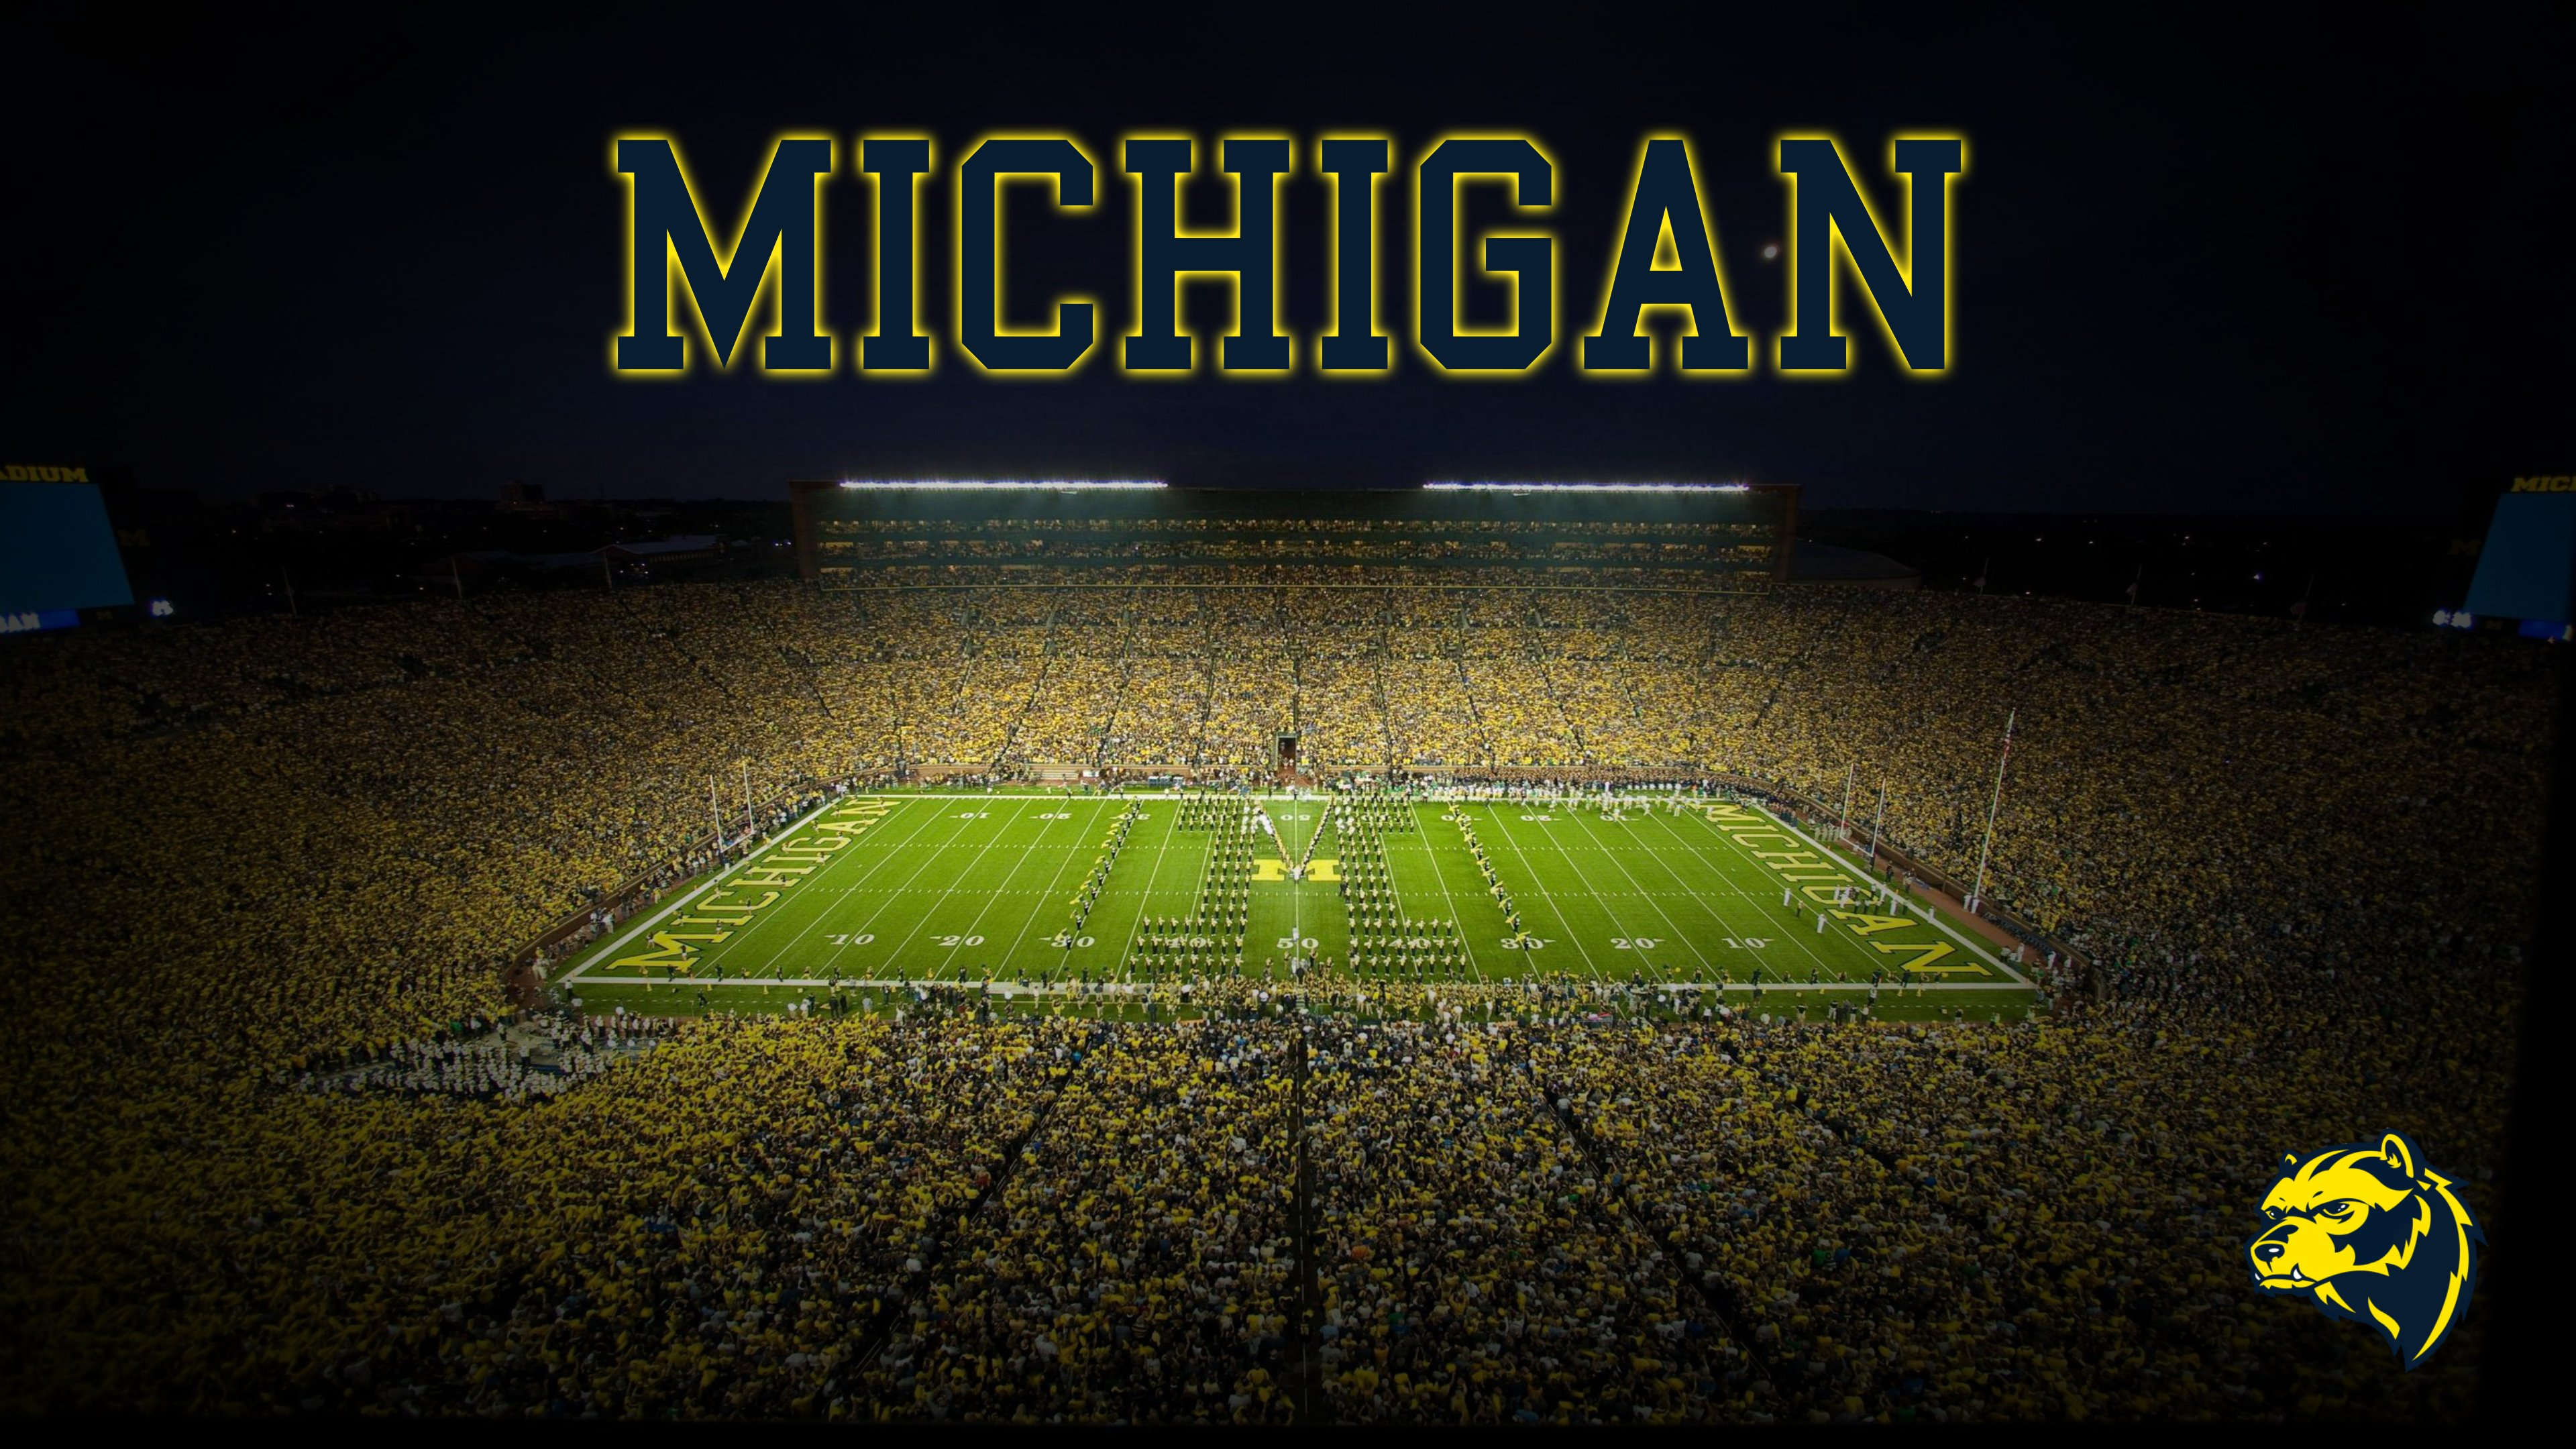 4k Michigan wallpaper I just drew up MichiganWolverines 3840x2160